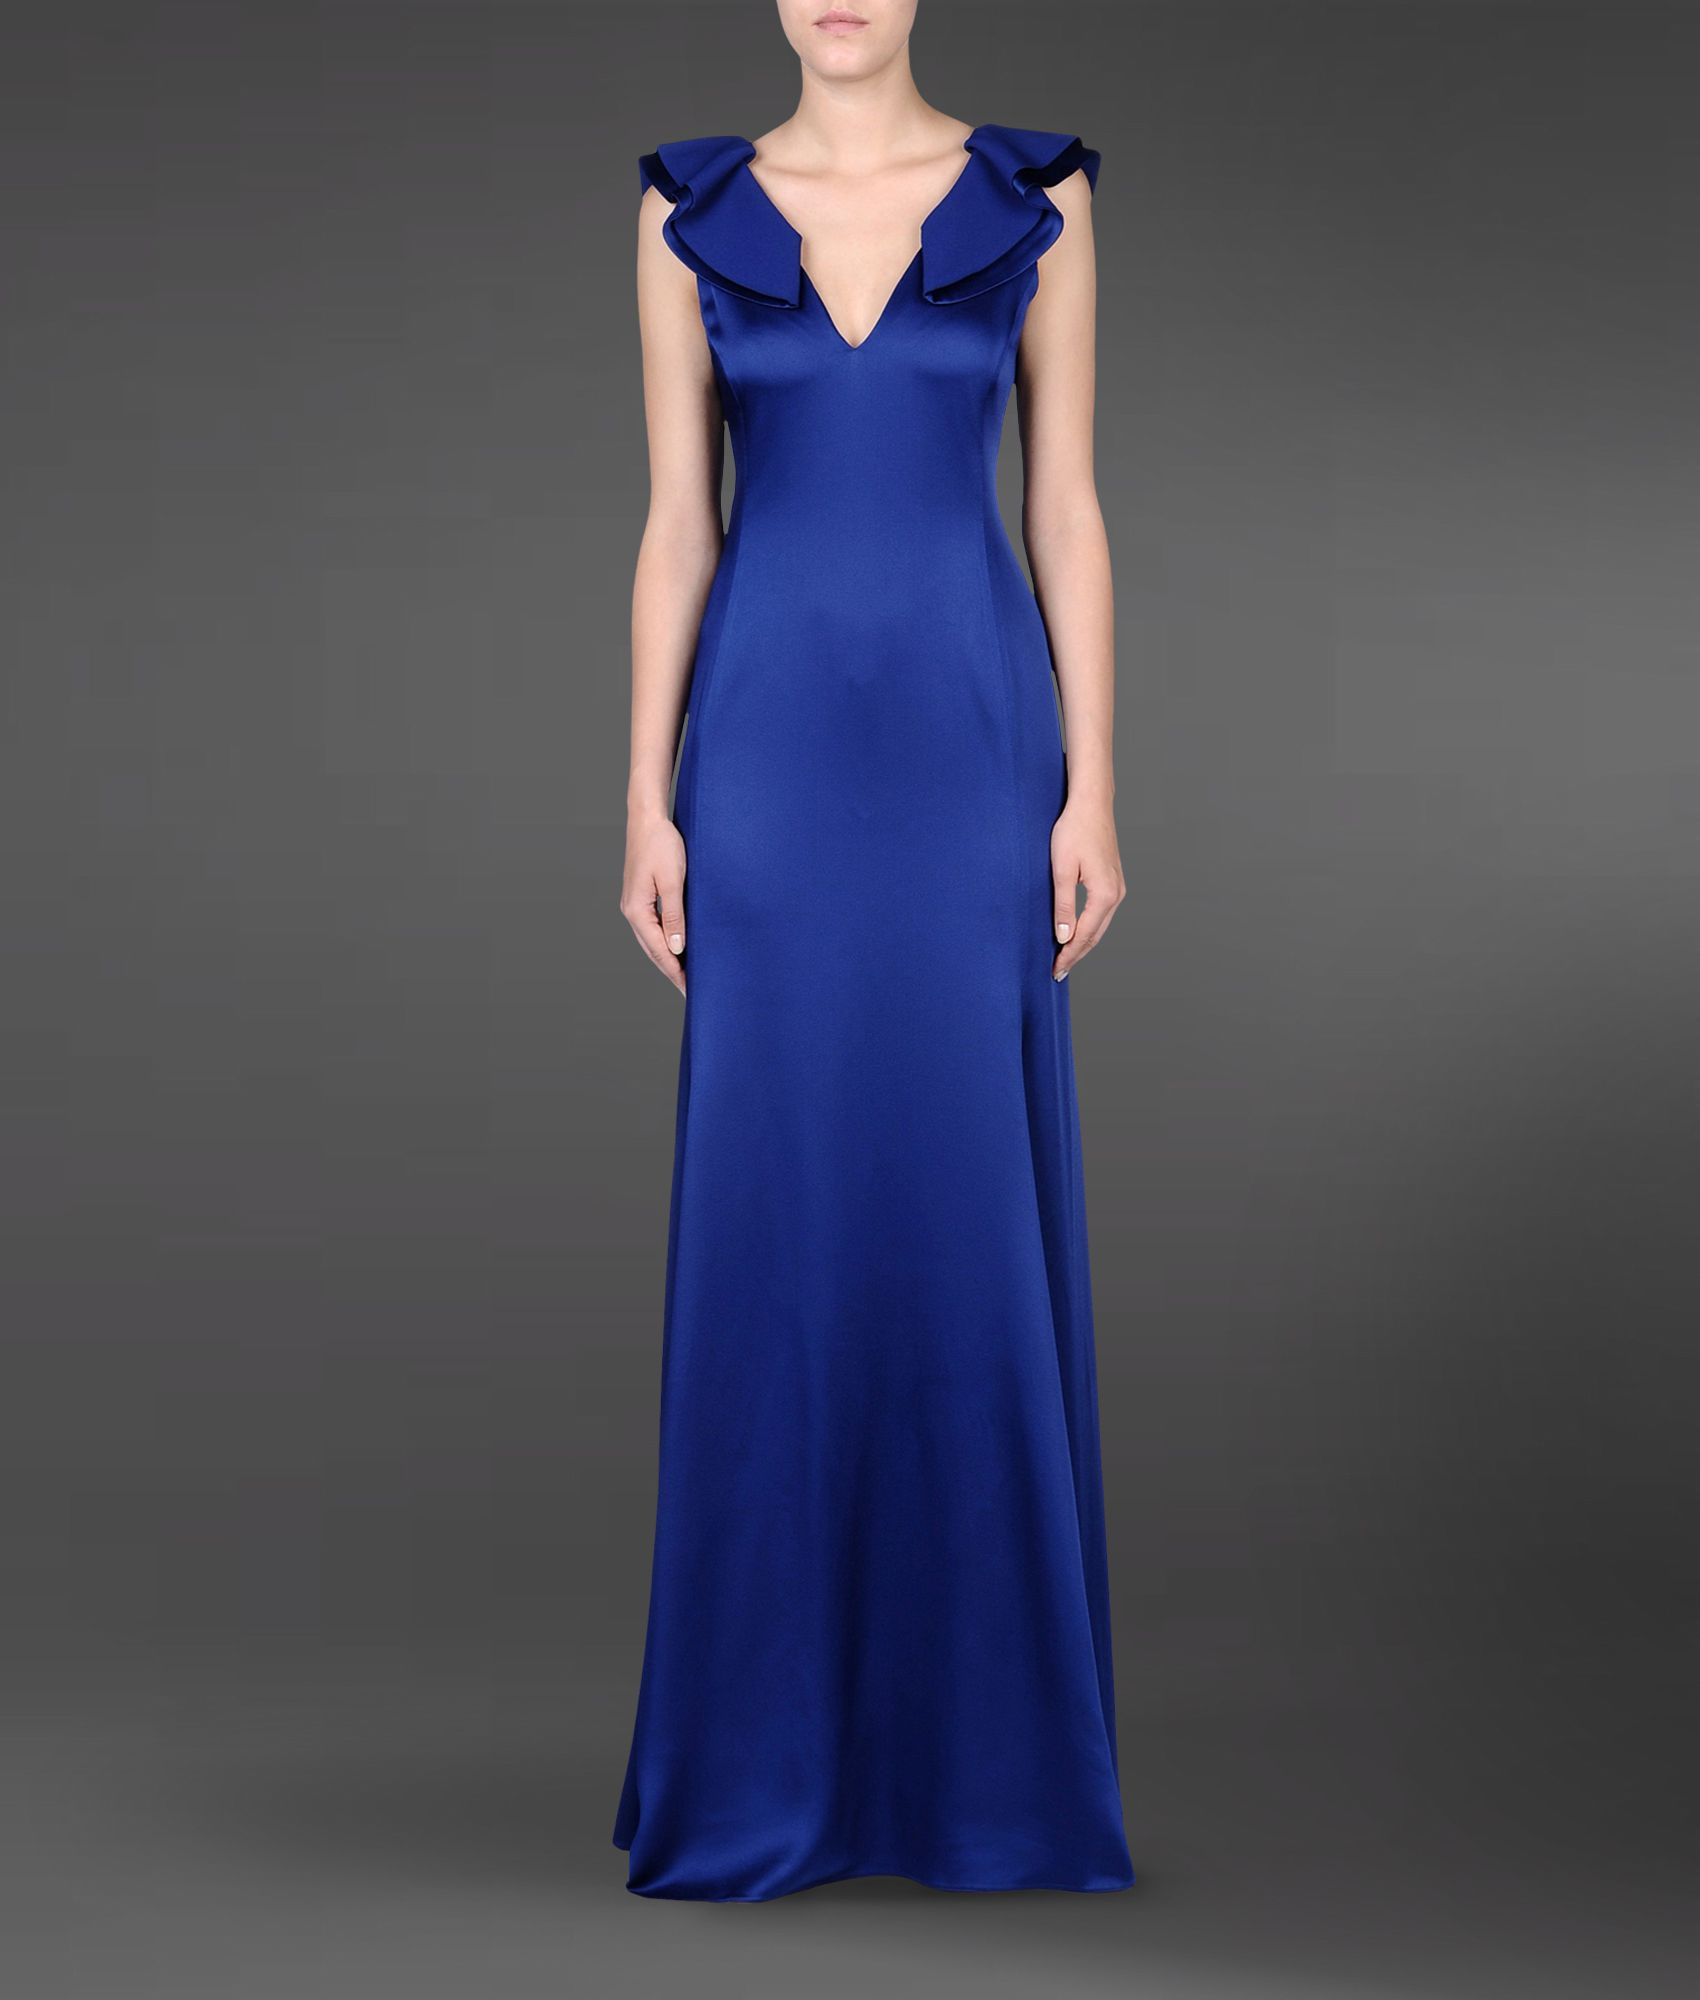 Cheap Sale Pick A Best DRESSES - Long dresses Emporio Armani Free Shipping Really 2018 Cheap Sale Best Wholesale Sale Online Discount Inexpensive QuO15CjX